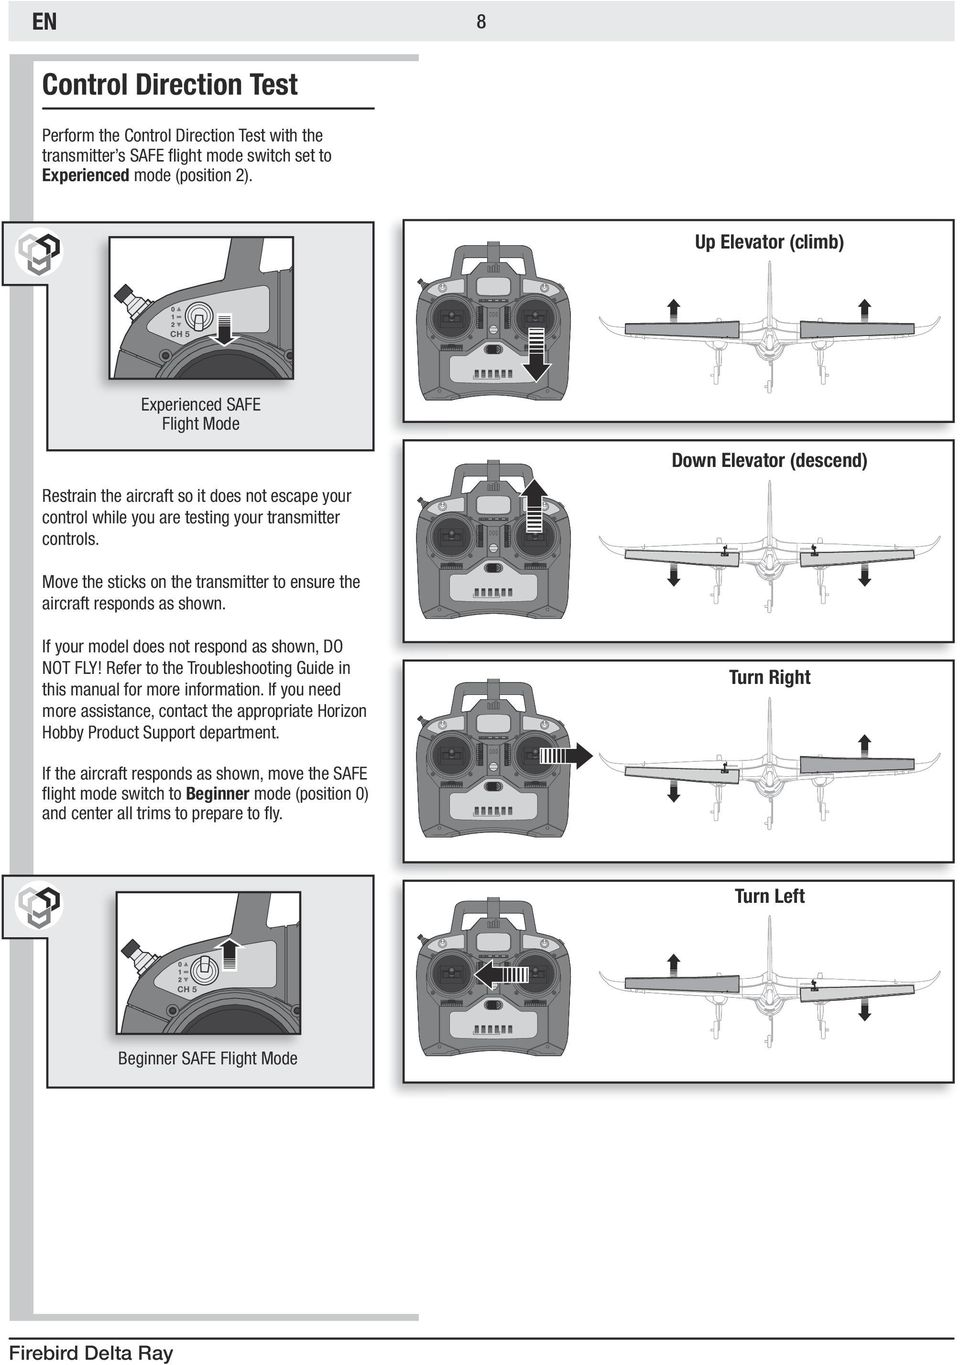 Move the sticks on the transmitter to ensure the aircraft responds as shown. If your model does not respond as shown, DO NOT FLY!